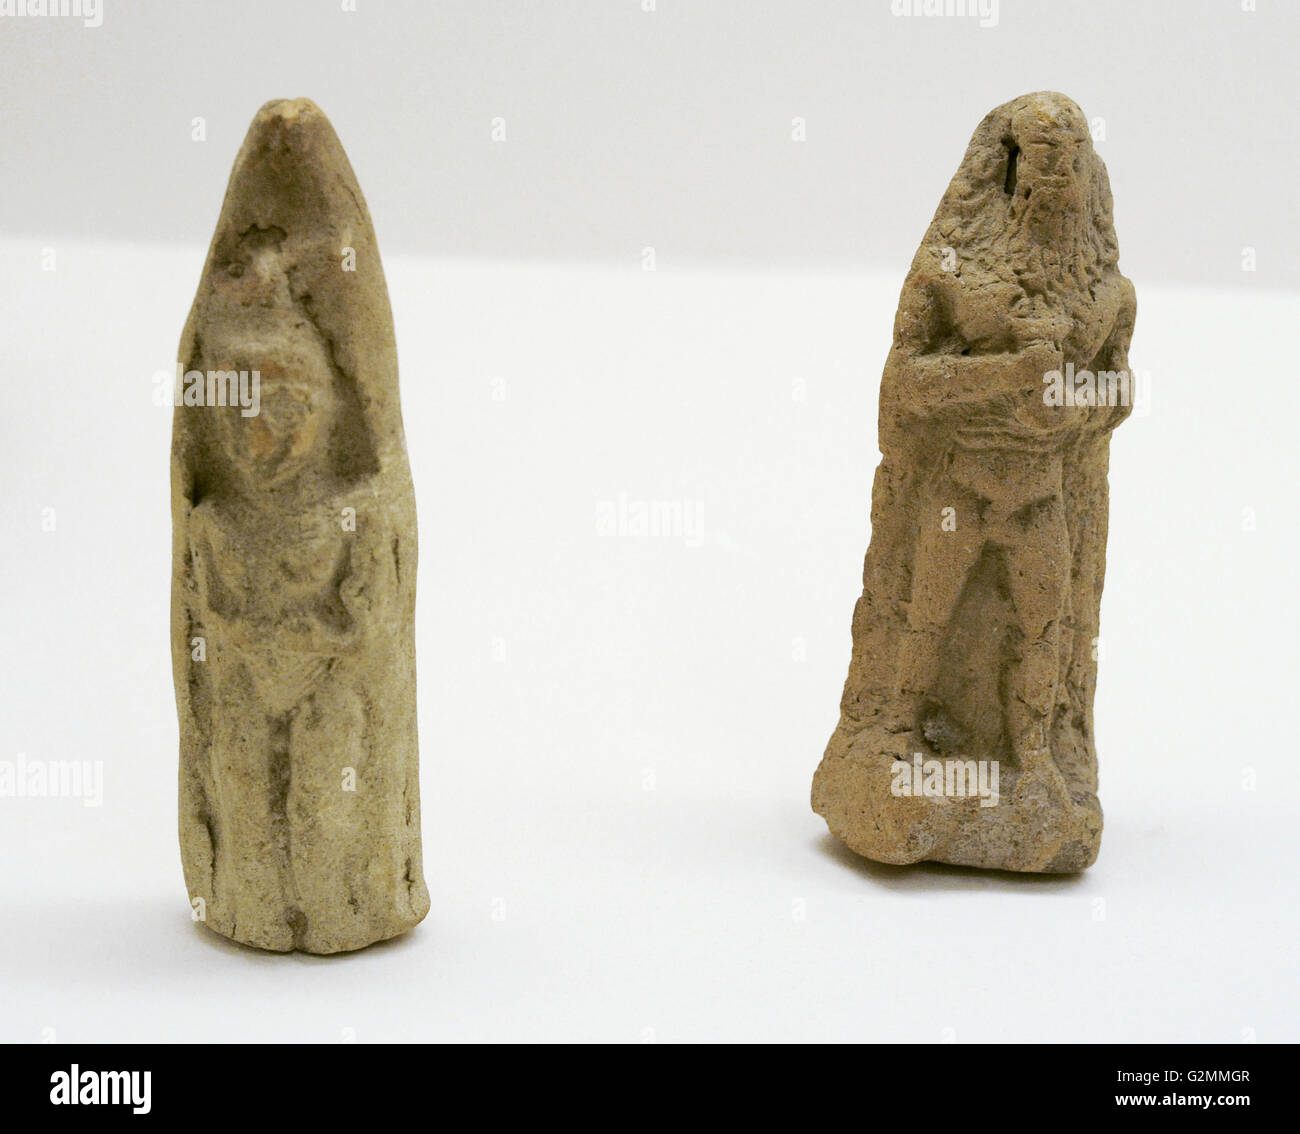 Near East. Terracota figurines. From Mesopotamia and Iran. The State Hermitage Museum. Saint Petersburg. Russia. - Stock Image